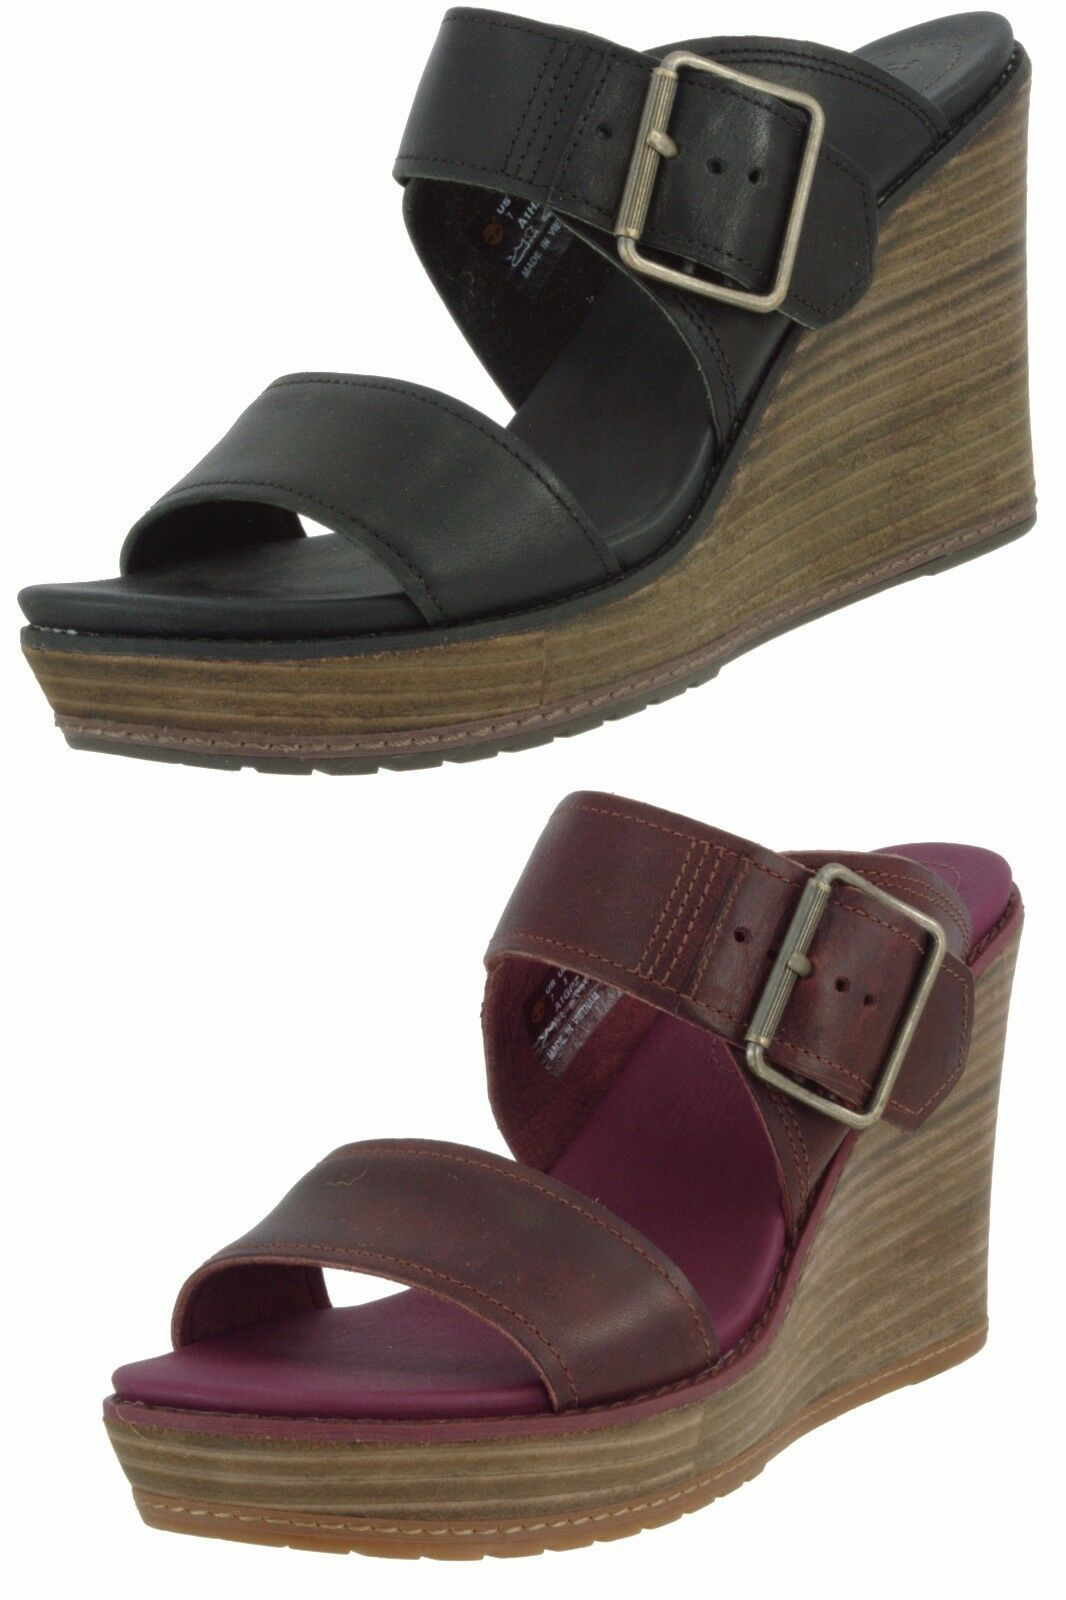 Primary image for TIMBERLAND SAMPLE WOMEN'S BRENTON BUCKLE SLIDEWEDGE SANDALS US 7 EU 38